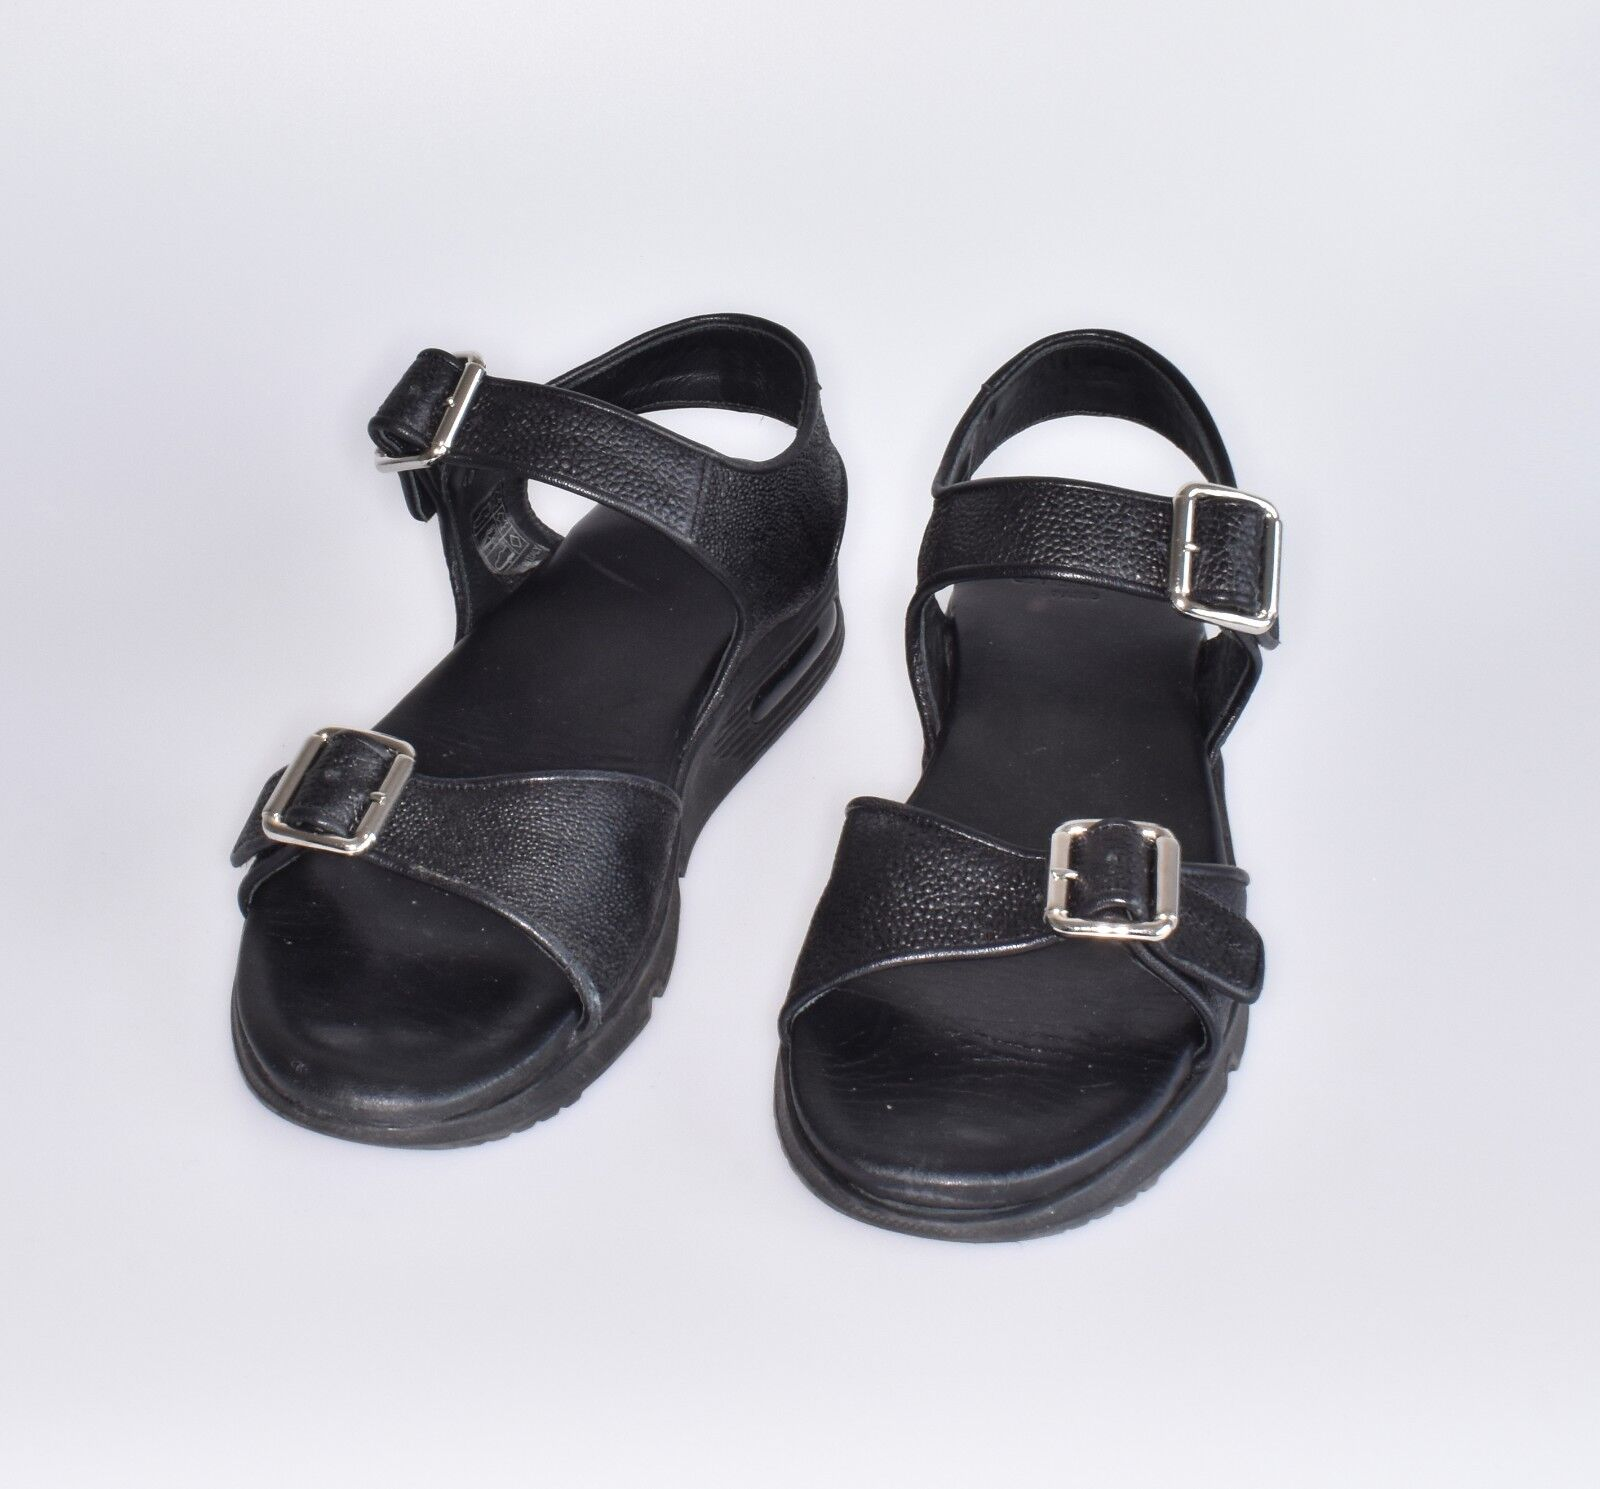 GIVENCHY black leather sandals UNISEX size 40 very comfy barley worn schuhe sand